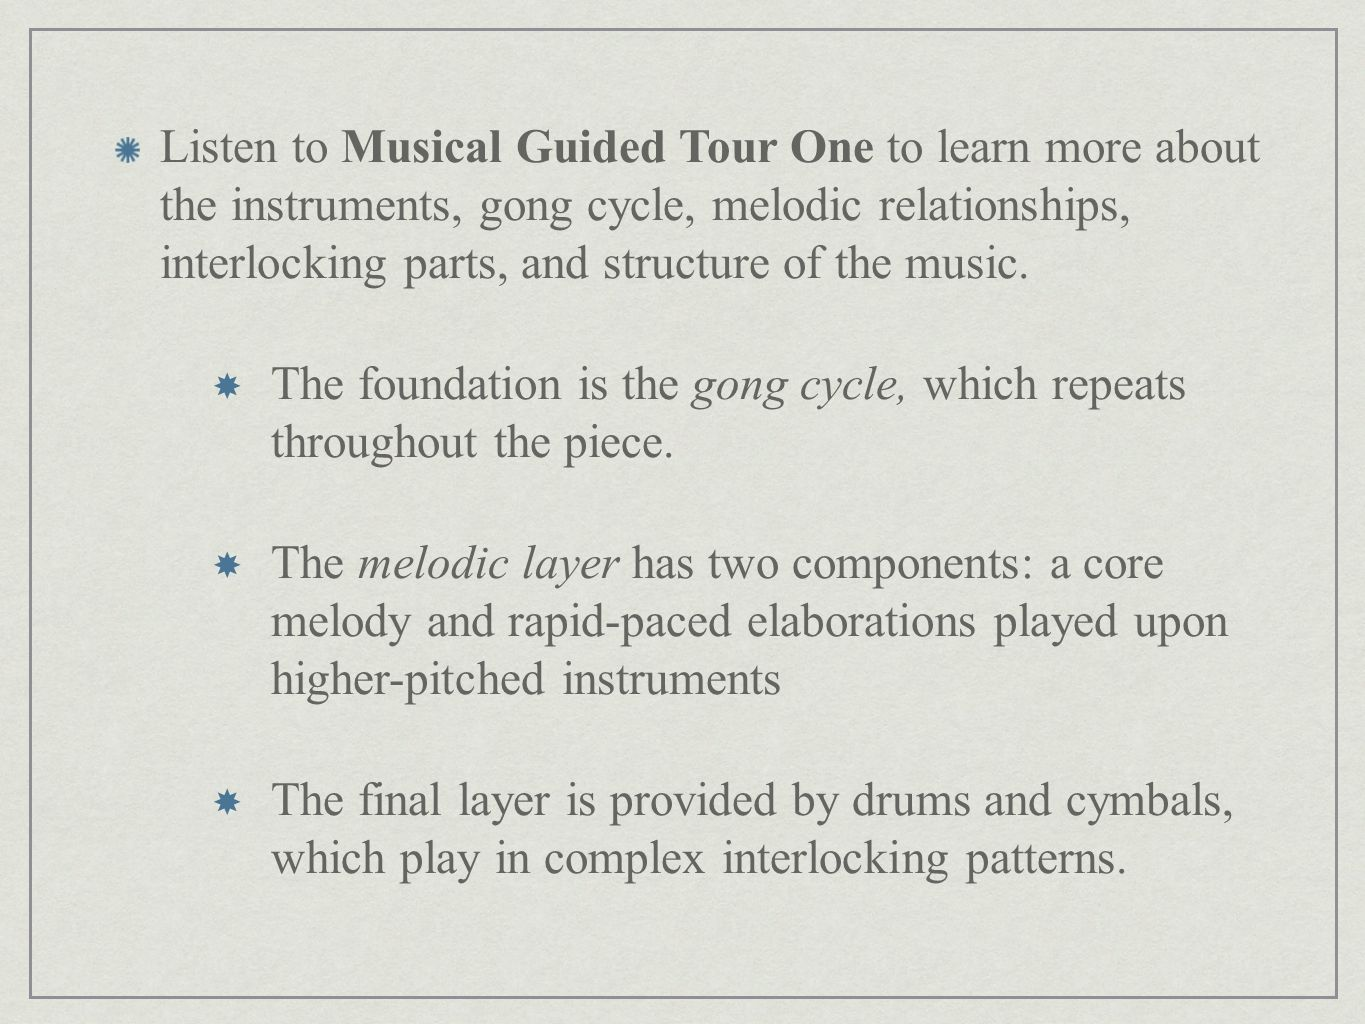 Listen to Musical Guided Tour One to learn more about the instruments, gong cycle, melodic relationships, interlocking parts, and structure of the music.